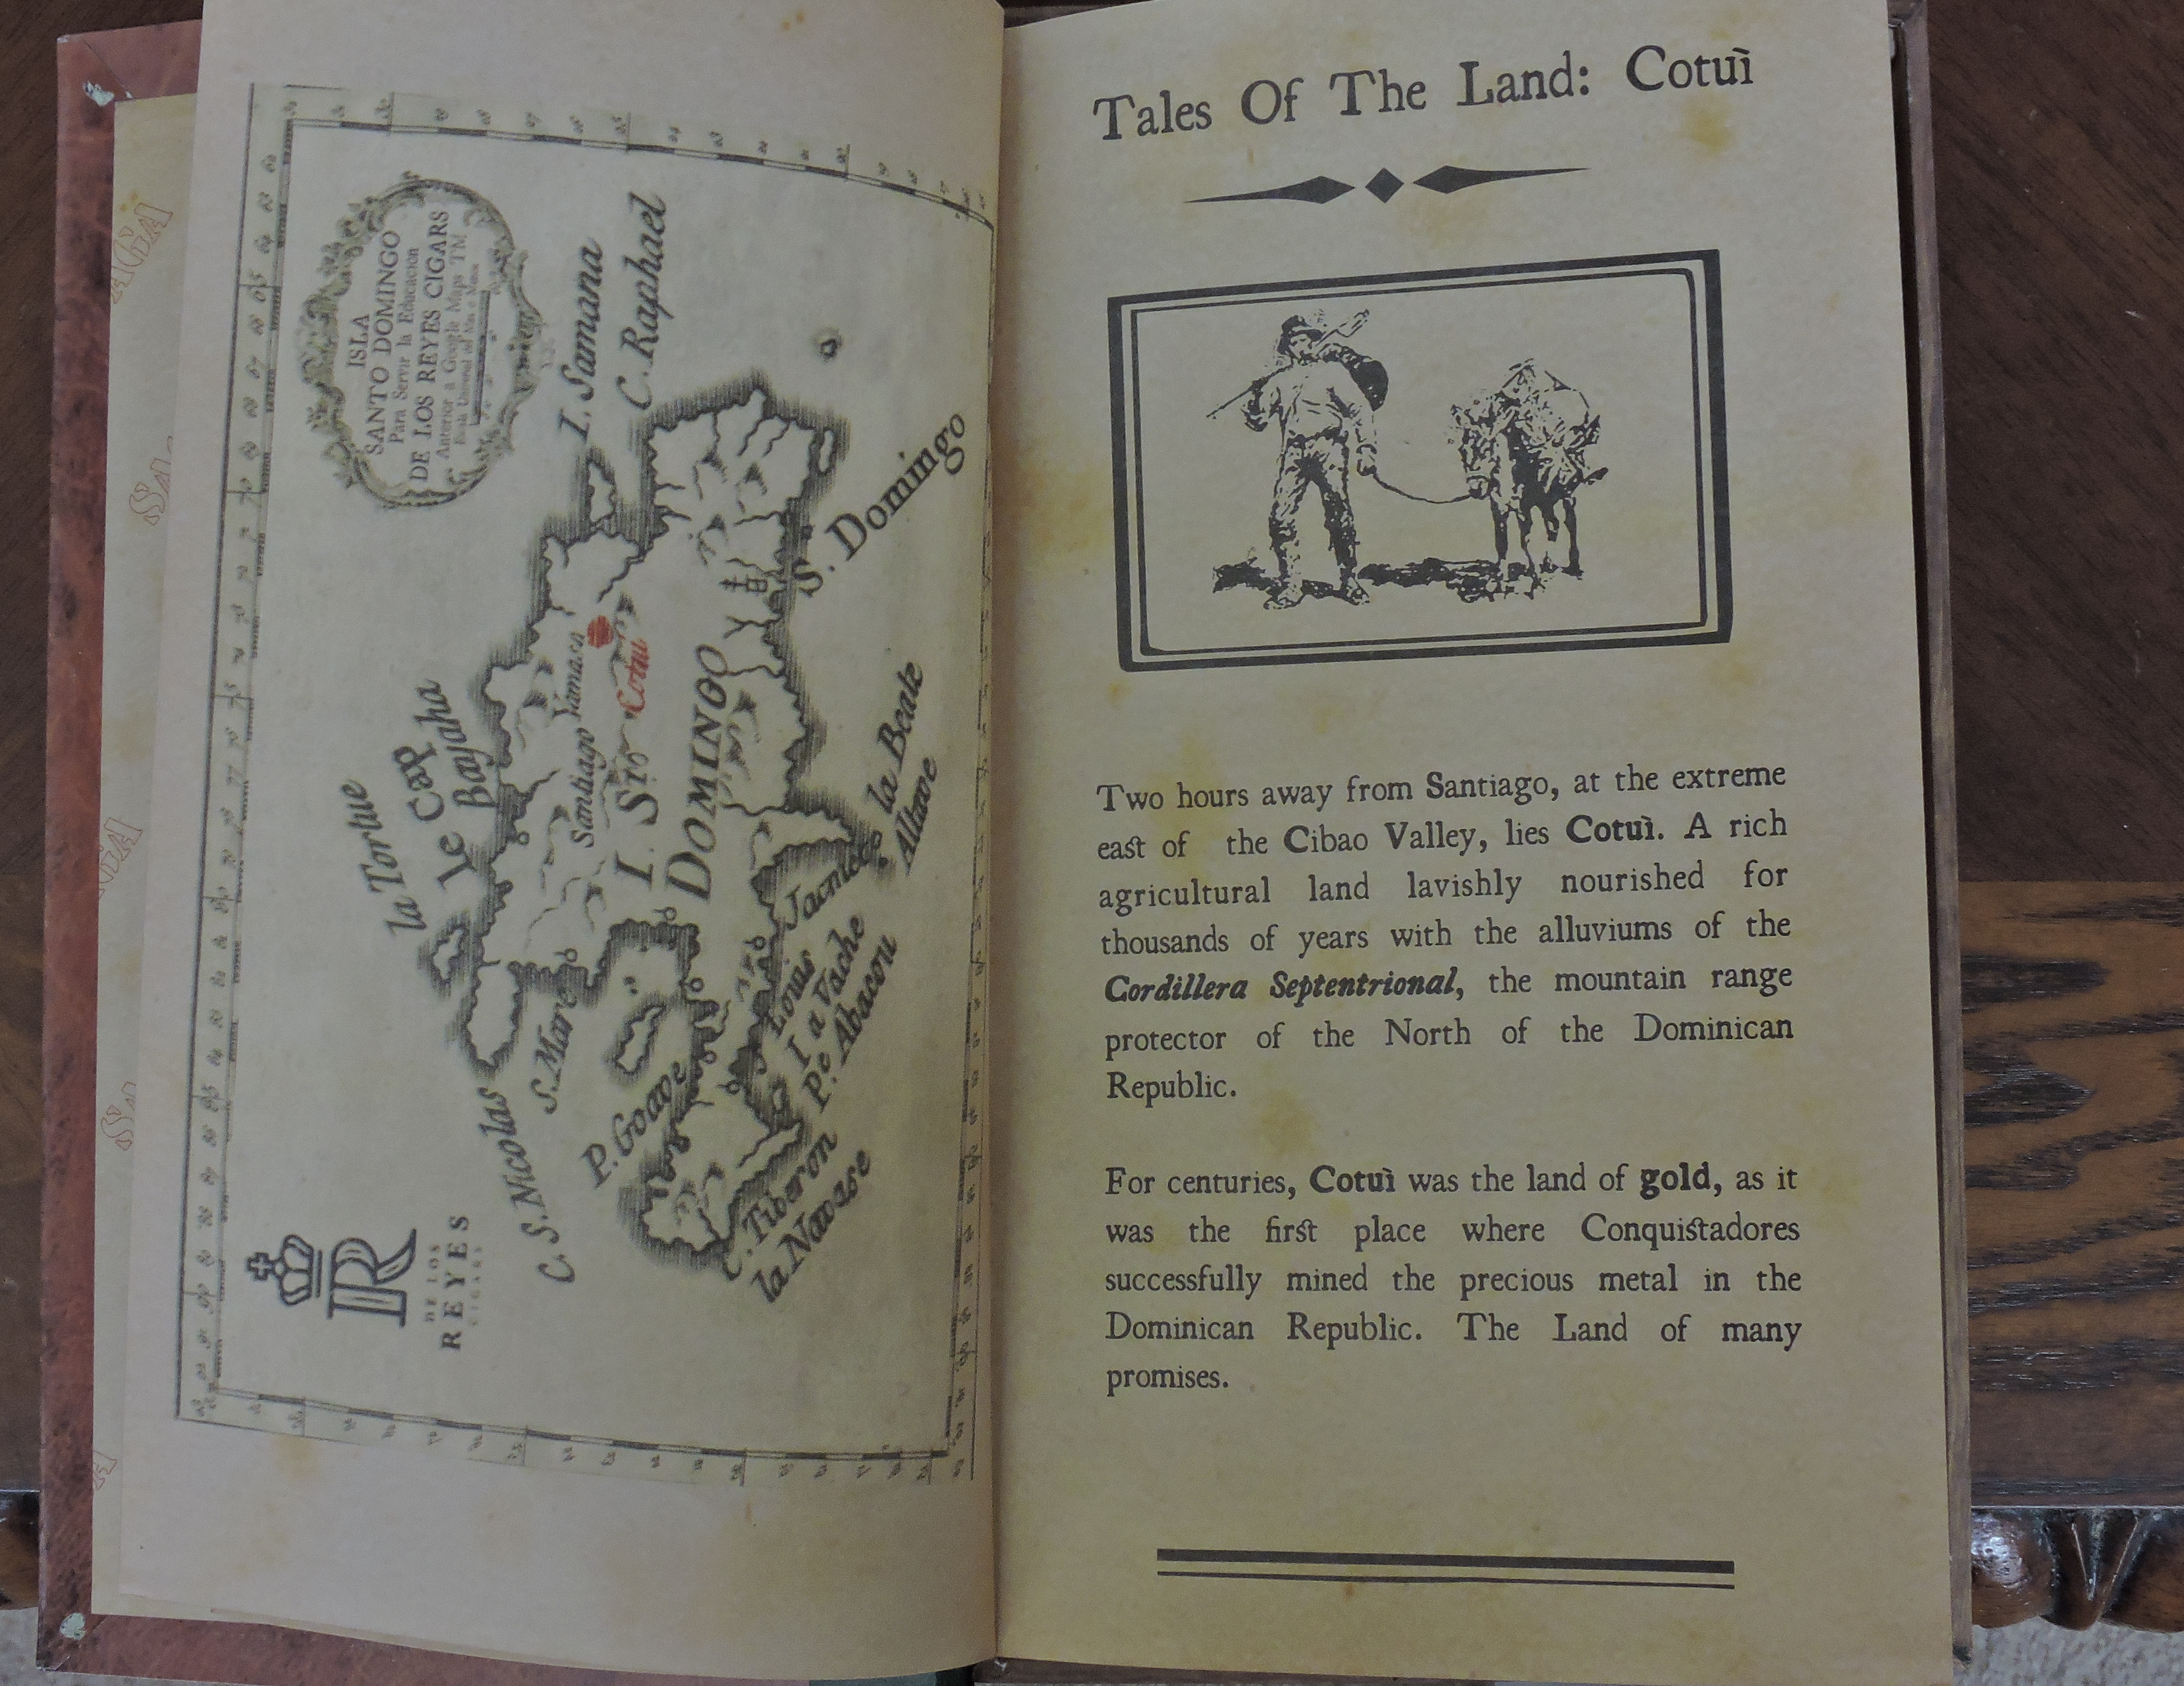 Saga Short Tales - Tales of the Land Cotui - Pages